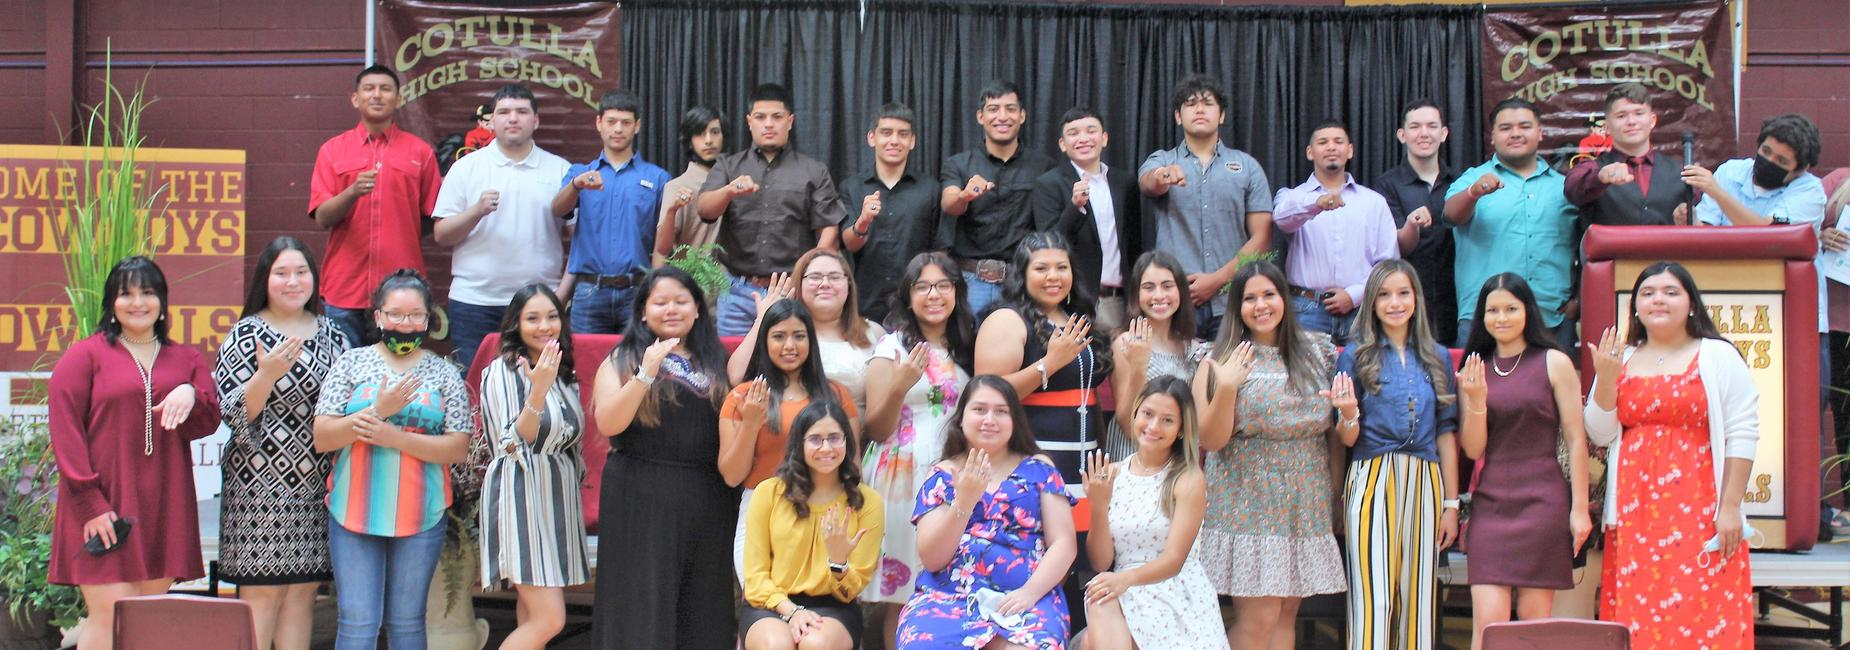 class of 2022 ring ceremony group pic